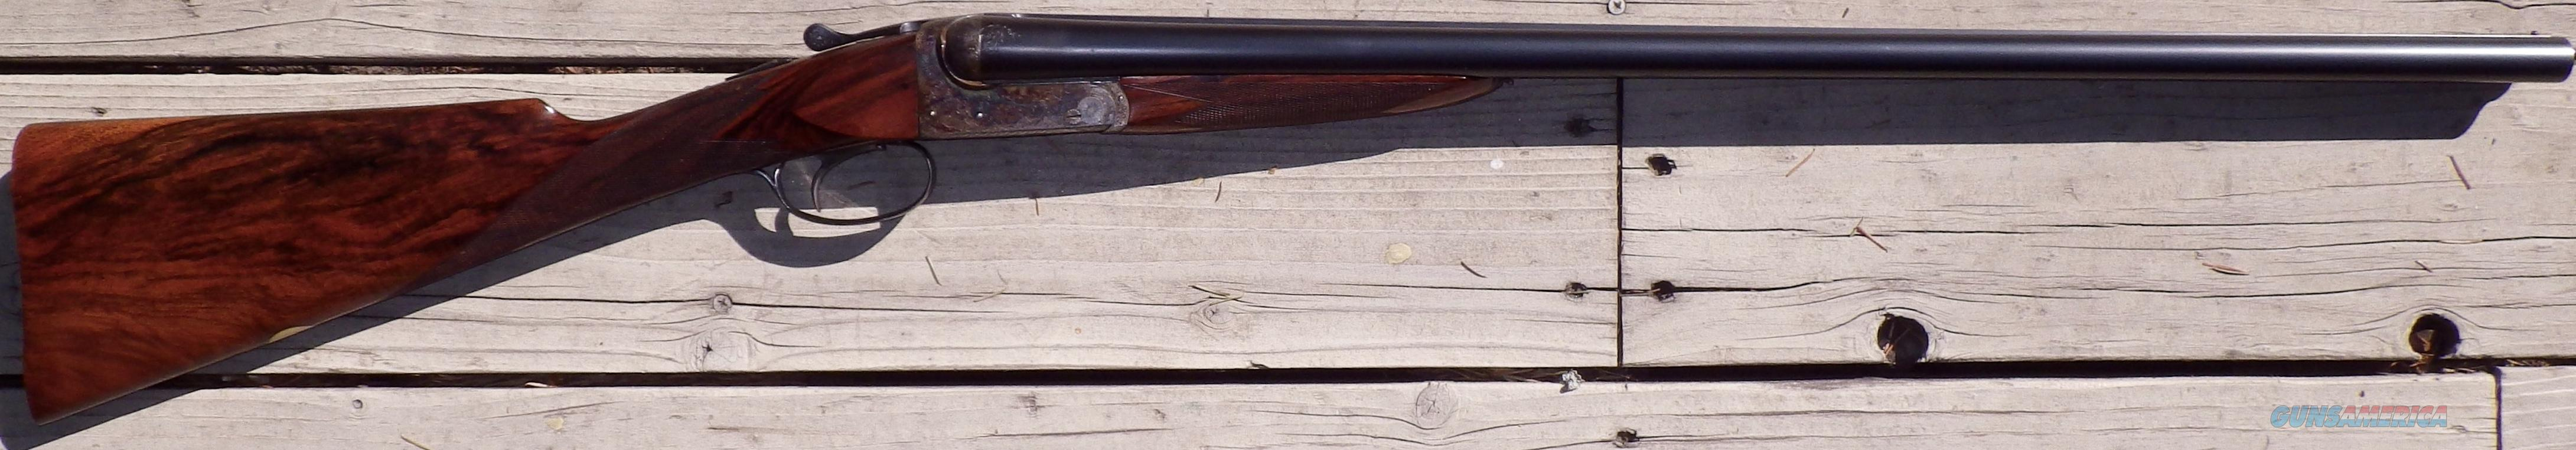 BSA 12 SxS, ejectors, Miller trigger, IC/M, 6.6 pounds  Guns > Shotguns > BSA Shotguns